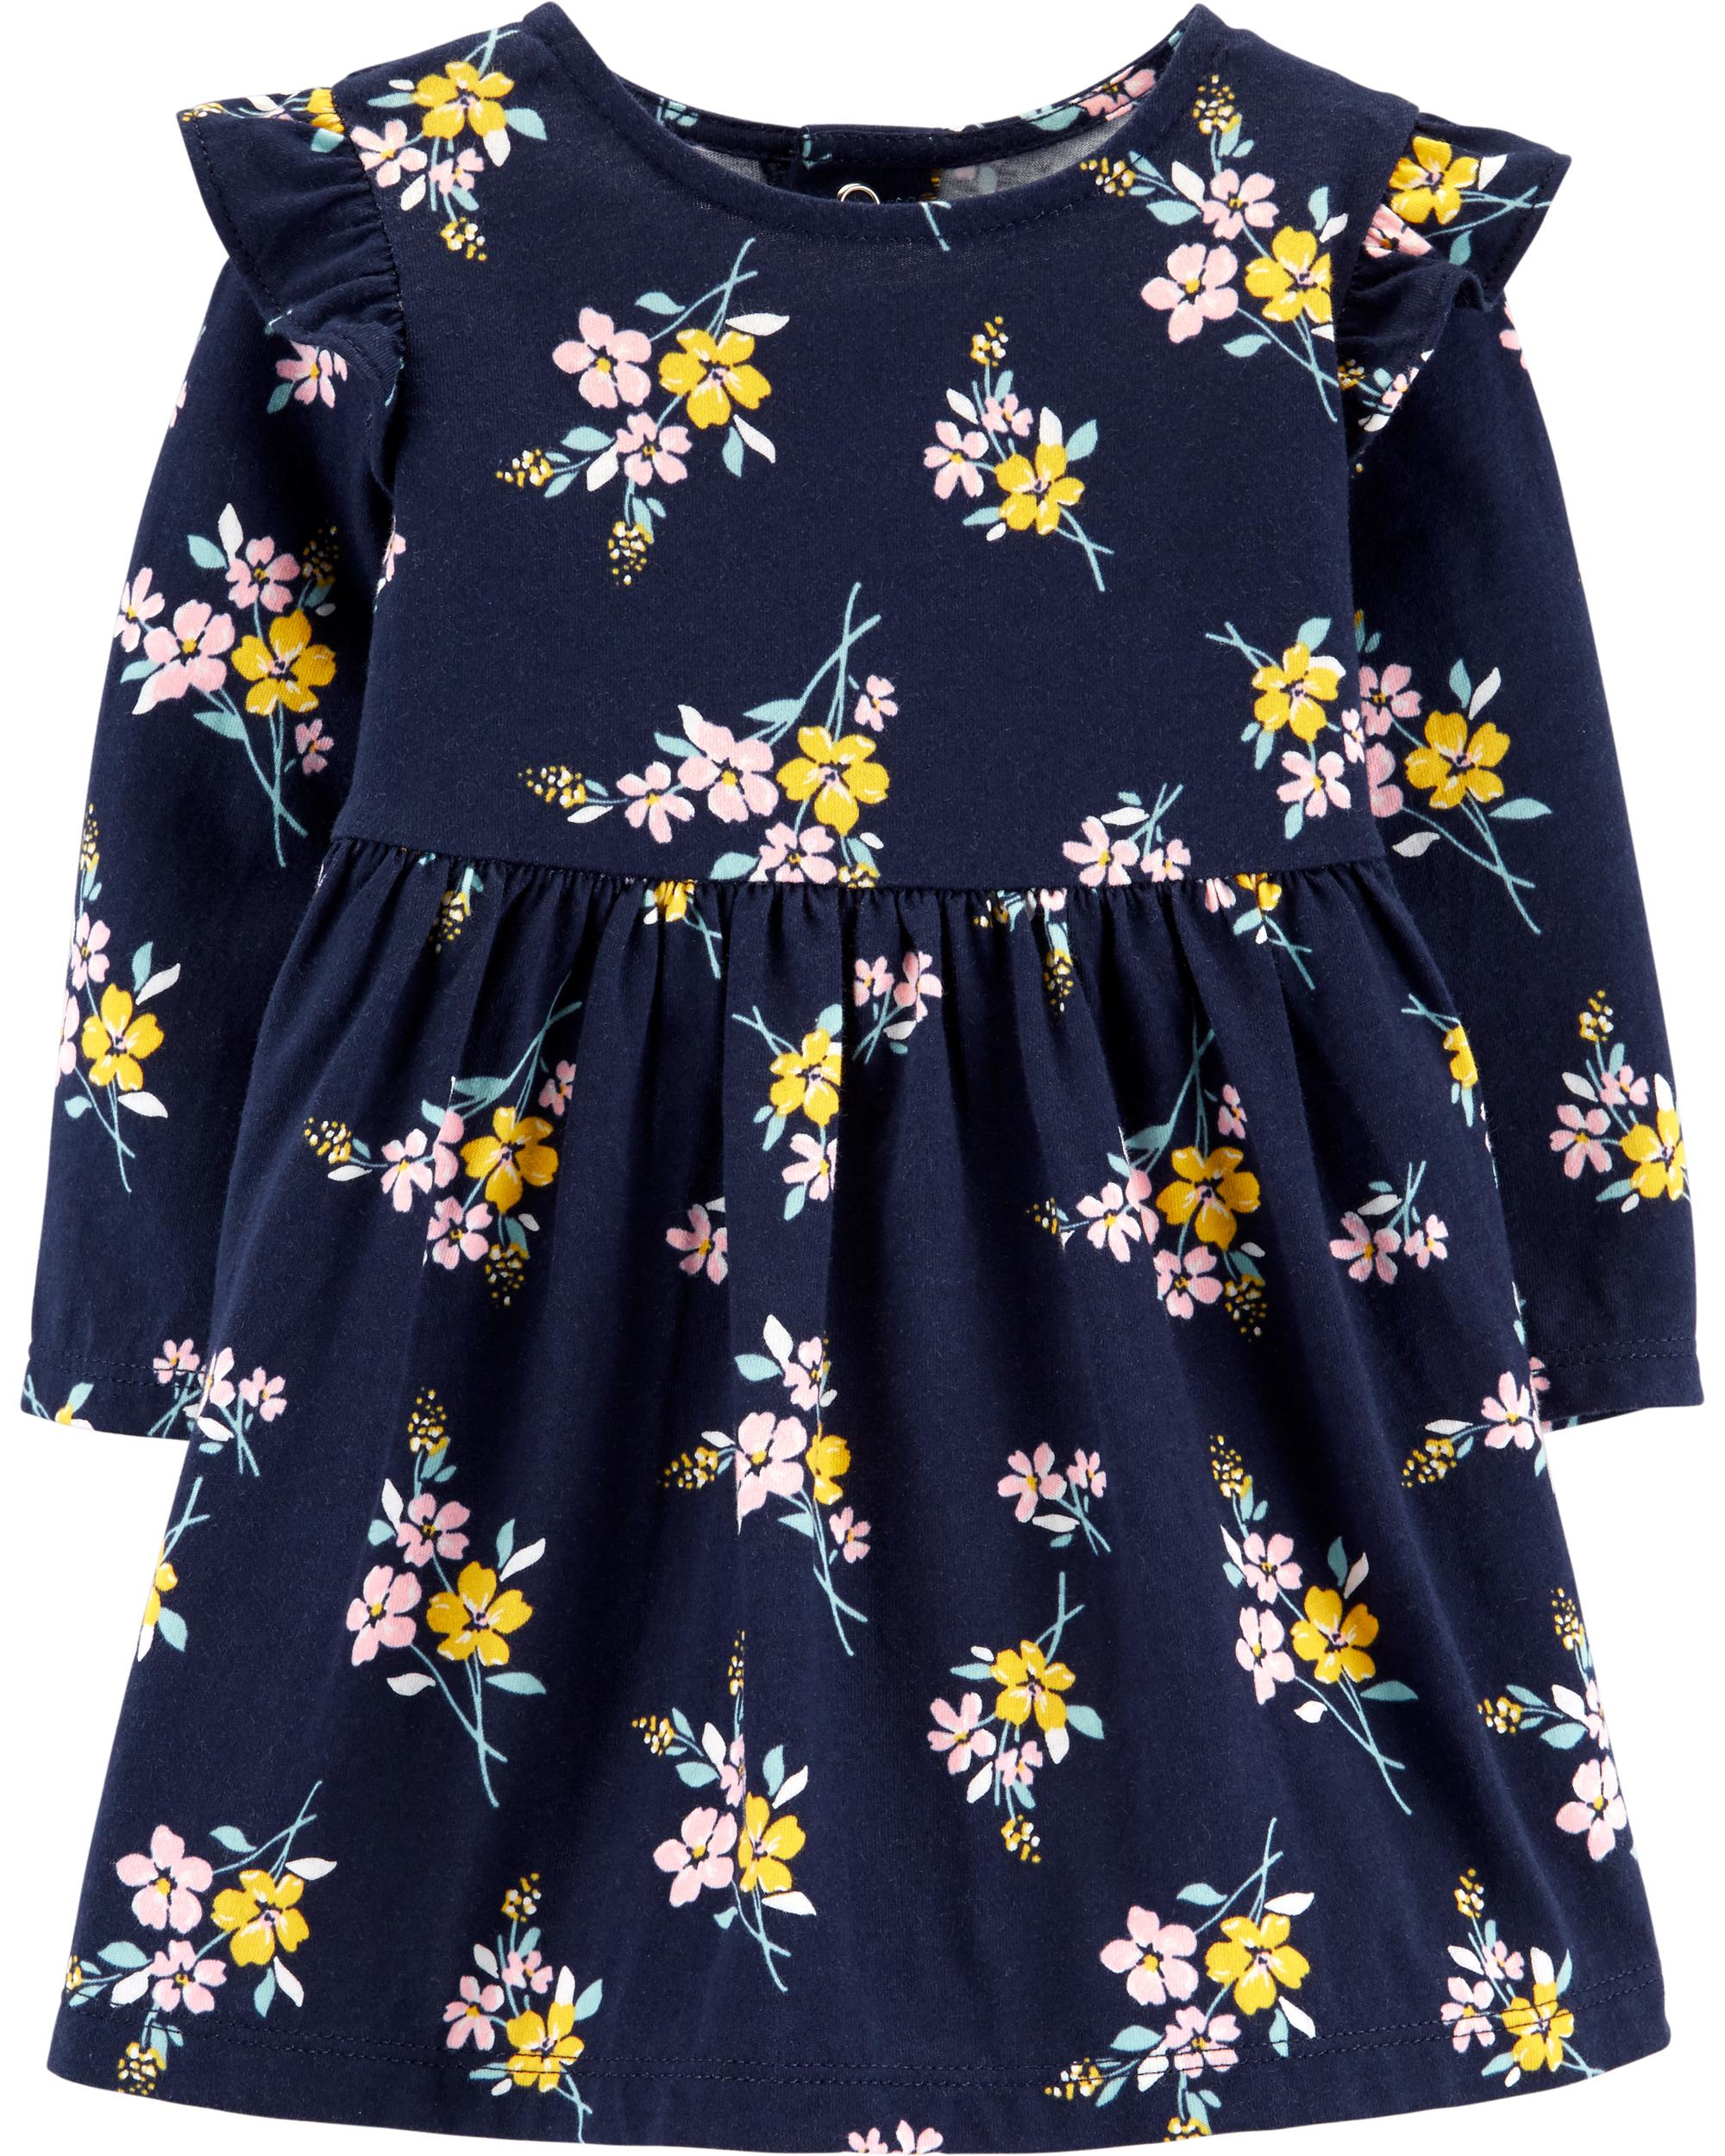 cd61f3146c9a0 Floral Jersey Dress | carters.com